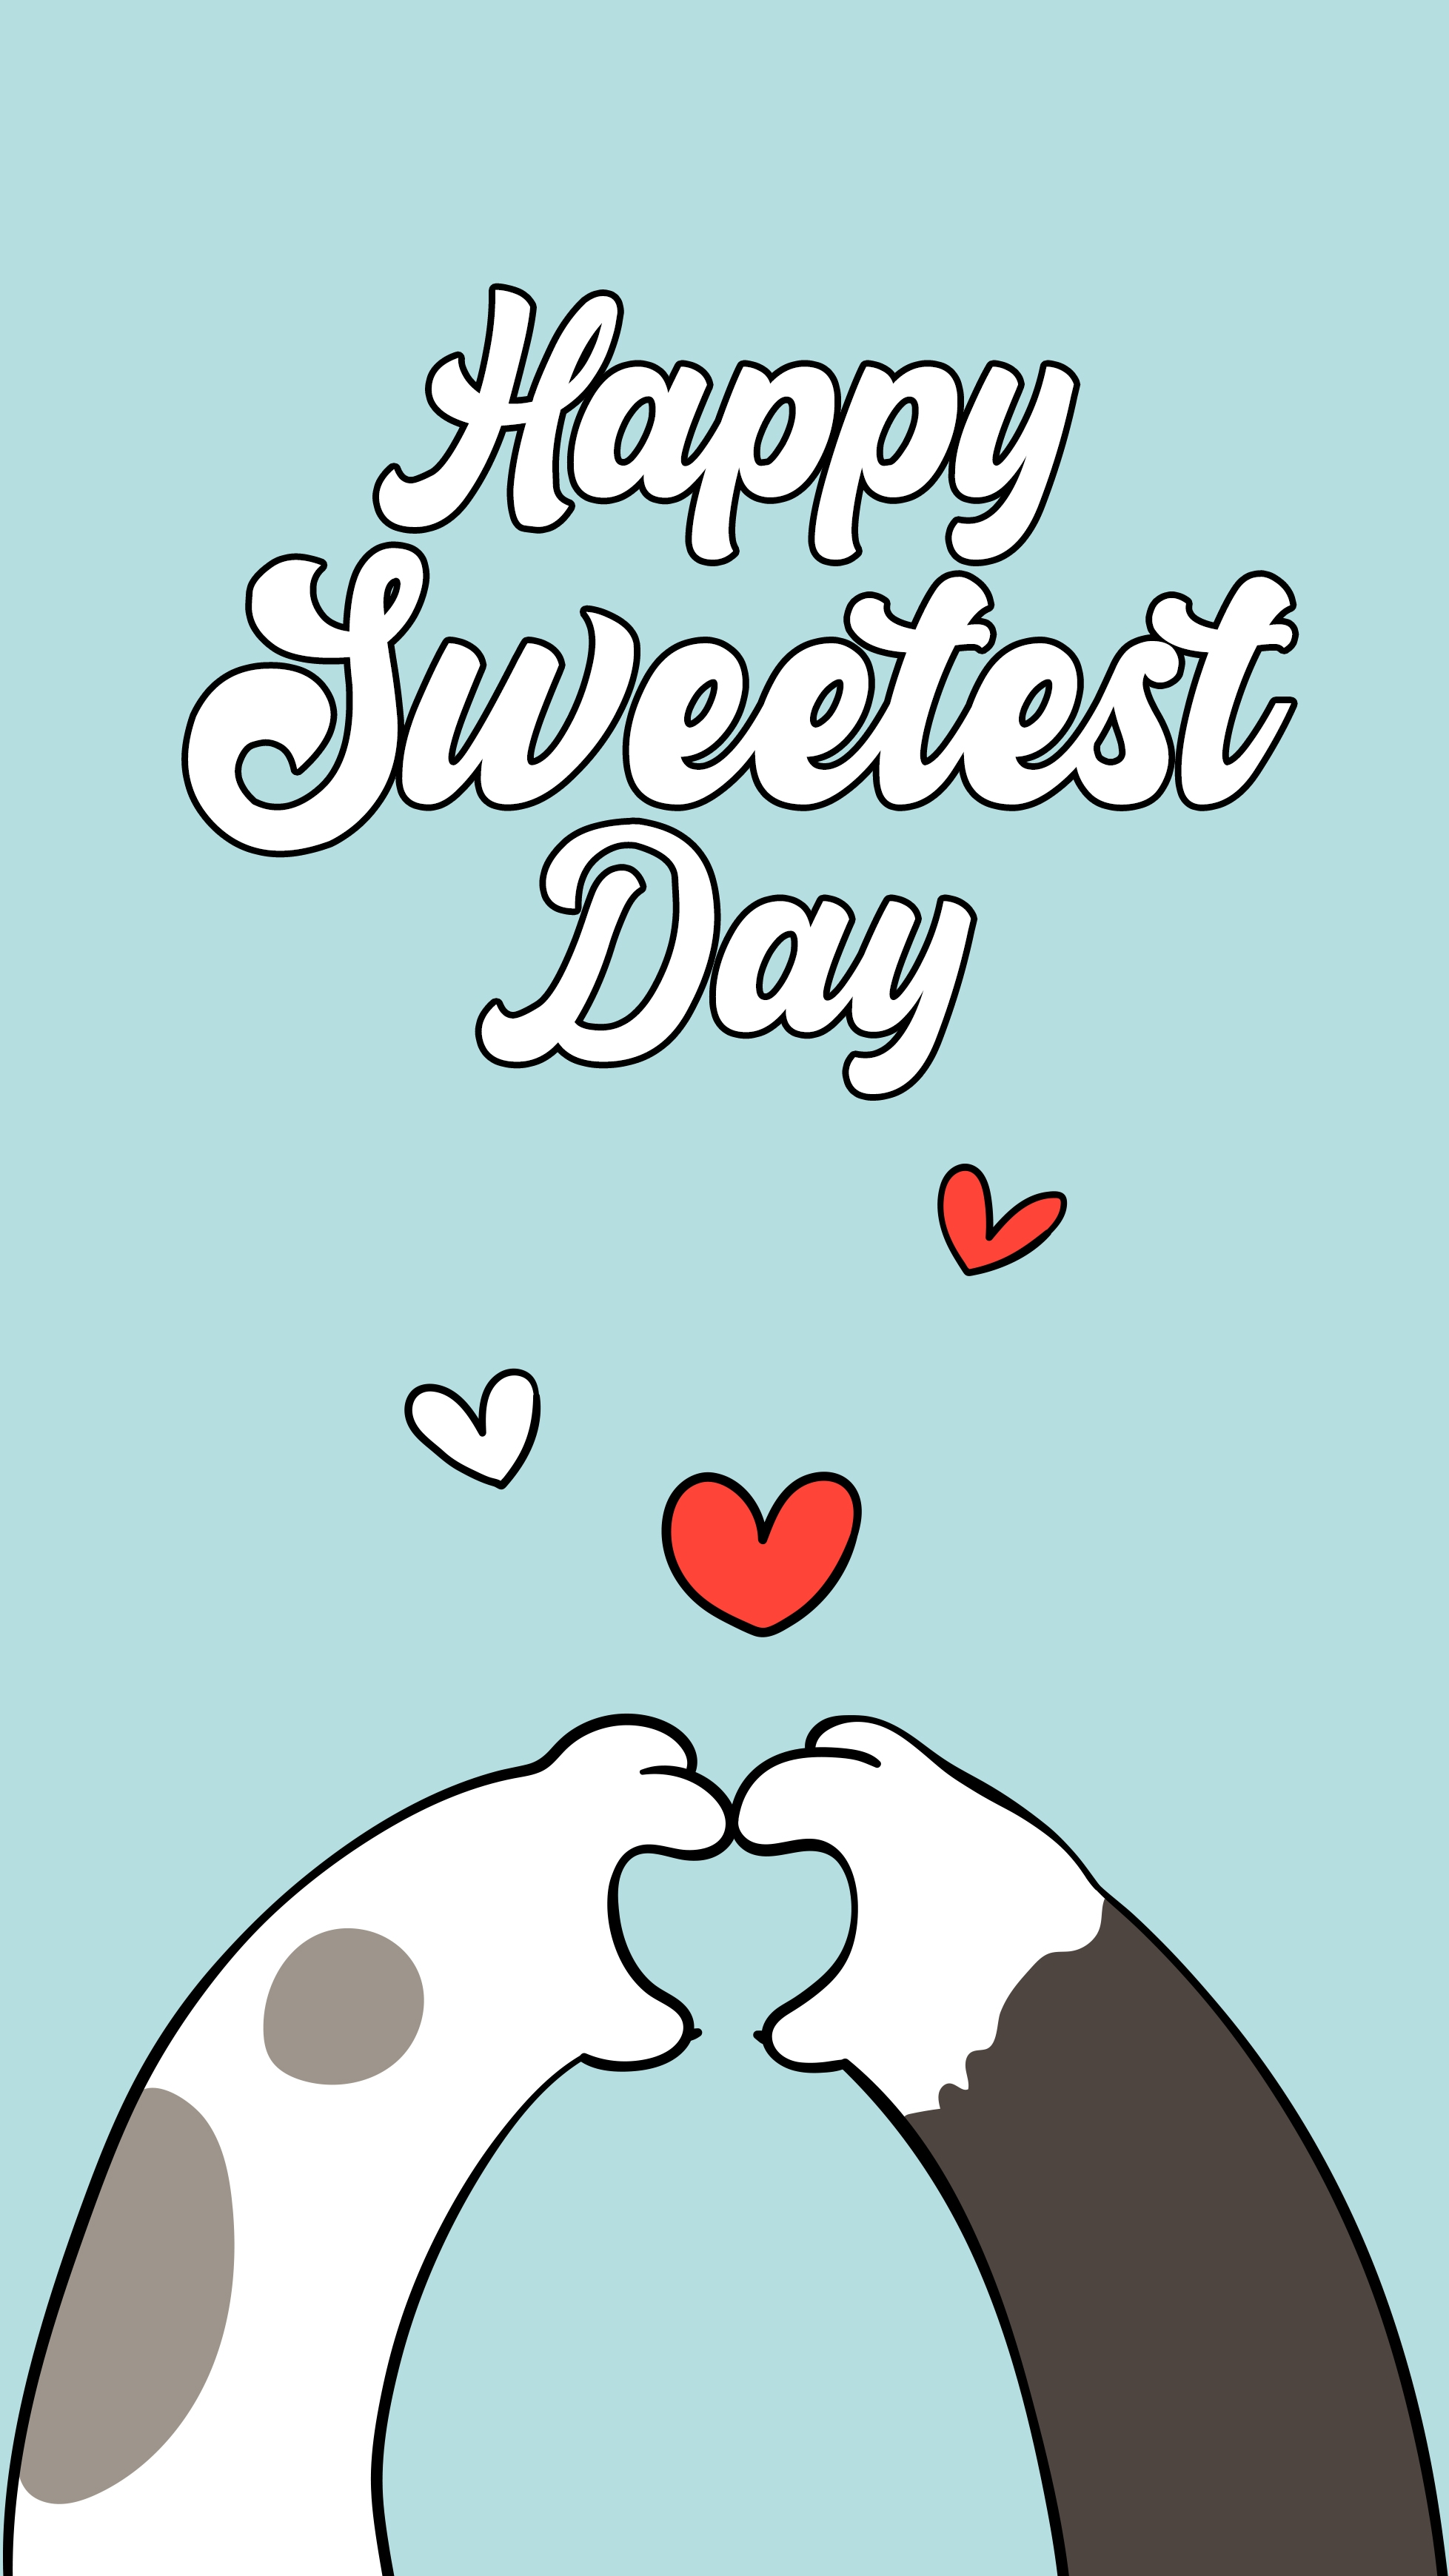 Sweetest Day II